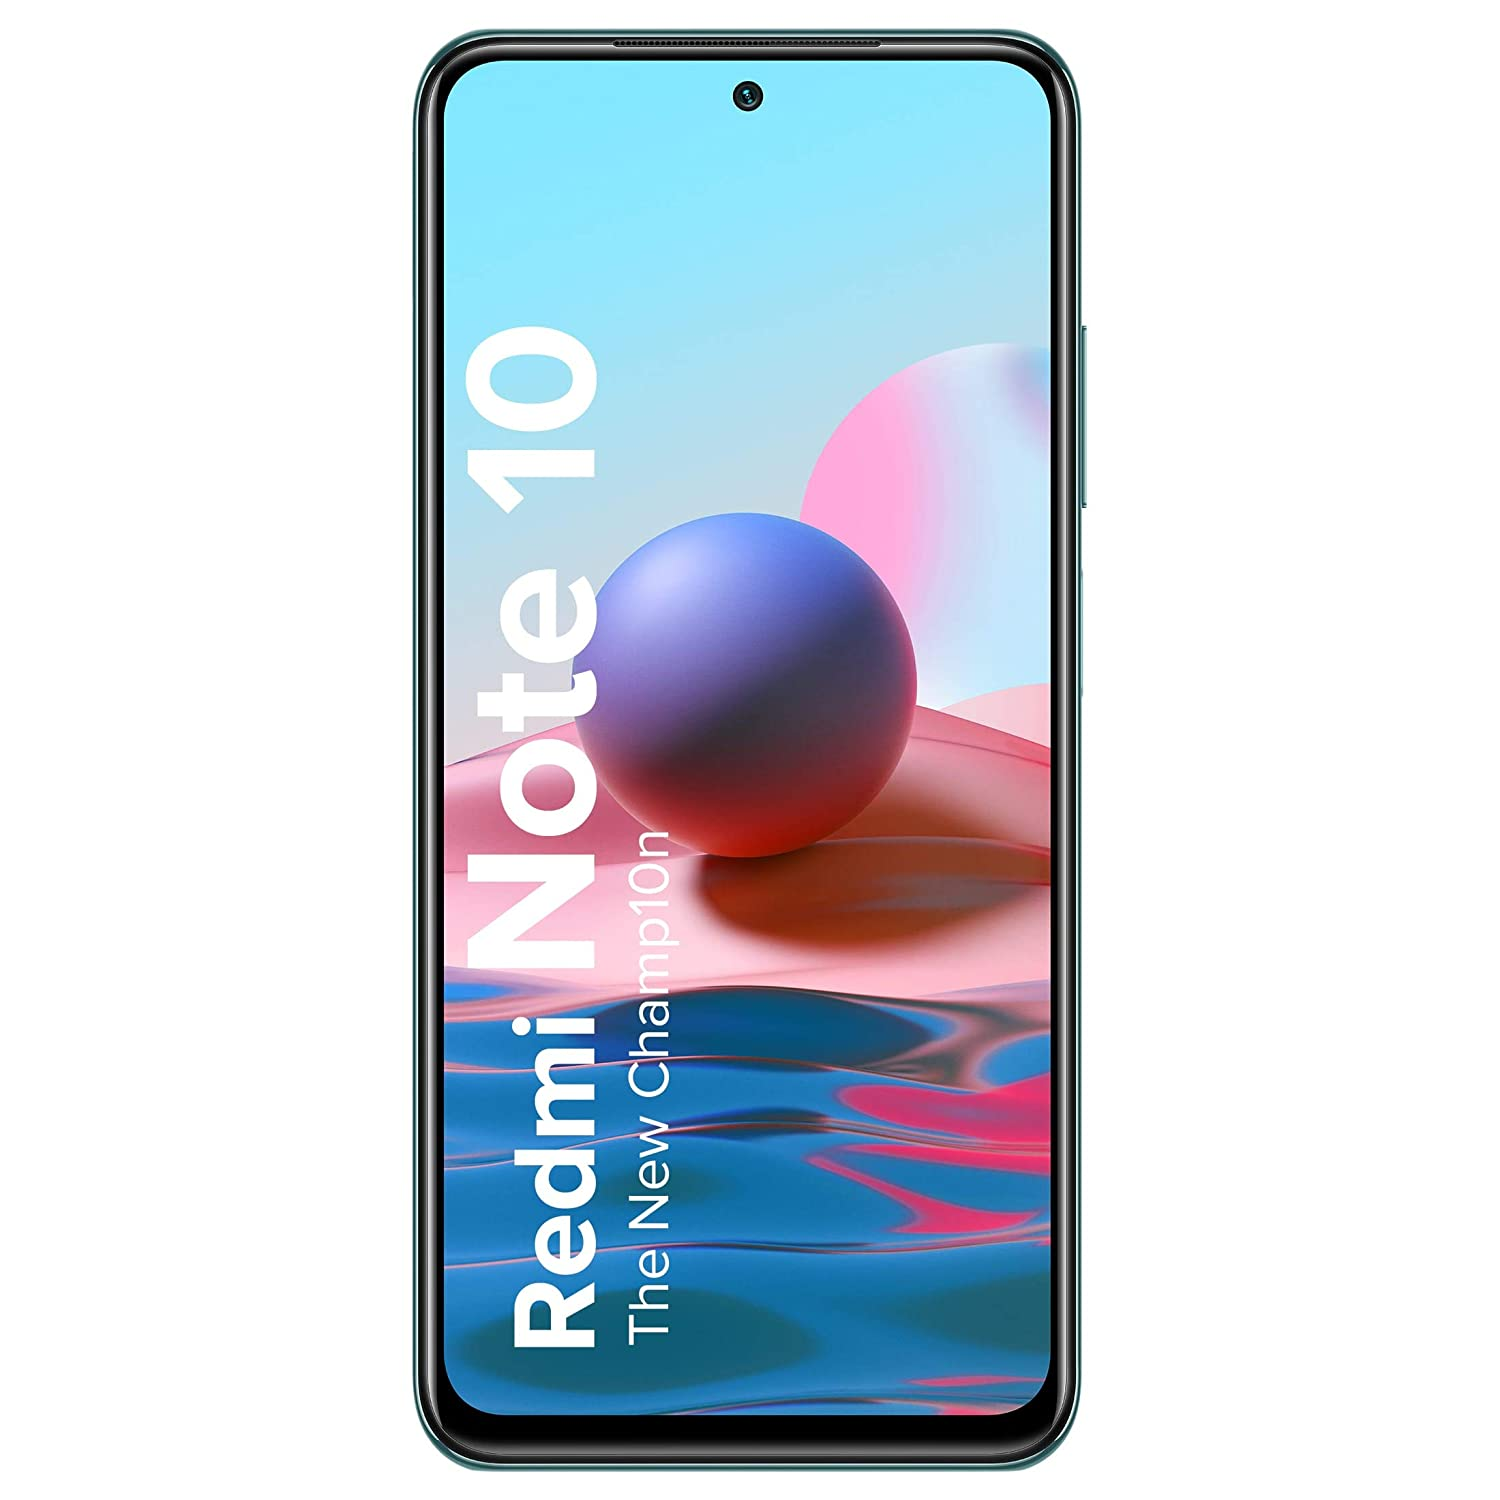 Redmi Note 10 (Aqua Green, 4GB RAM, 64GB Storage) - Super Amoled Display | 48MP Sony Sensor IMX582 | Snapdragon 678 Processor